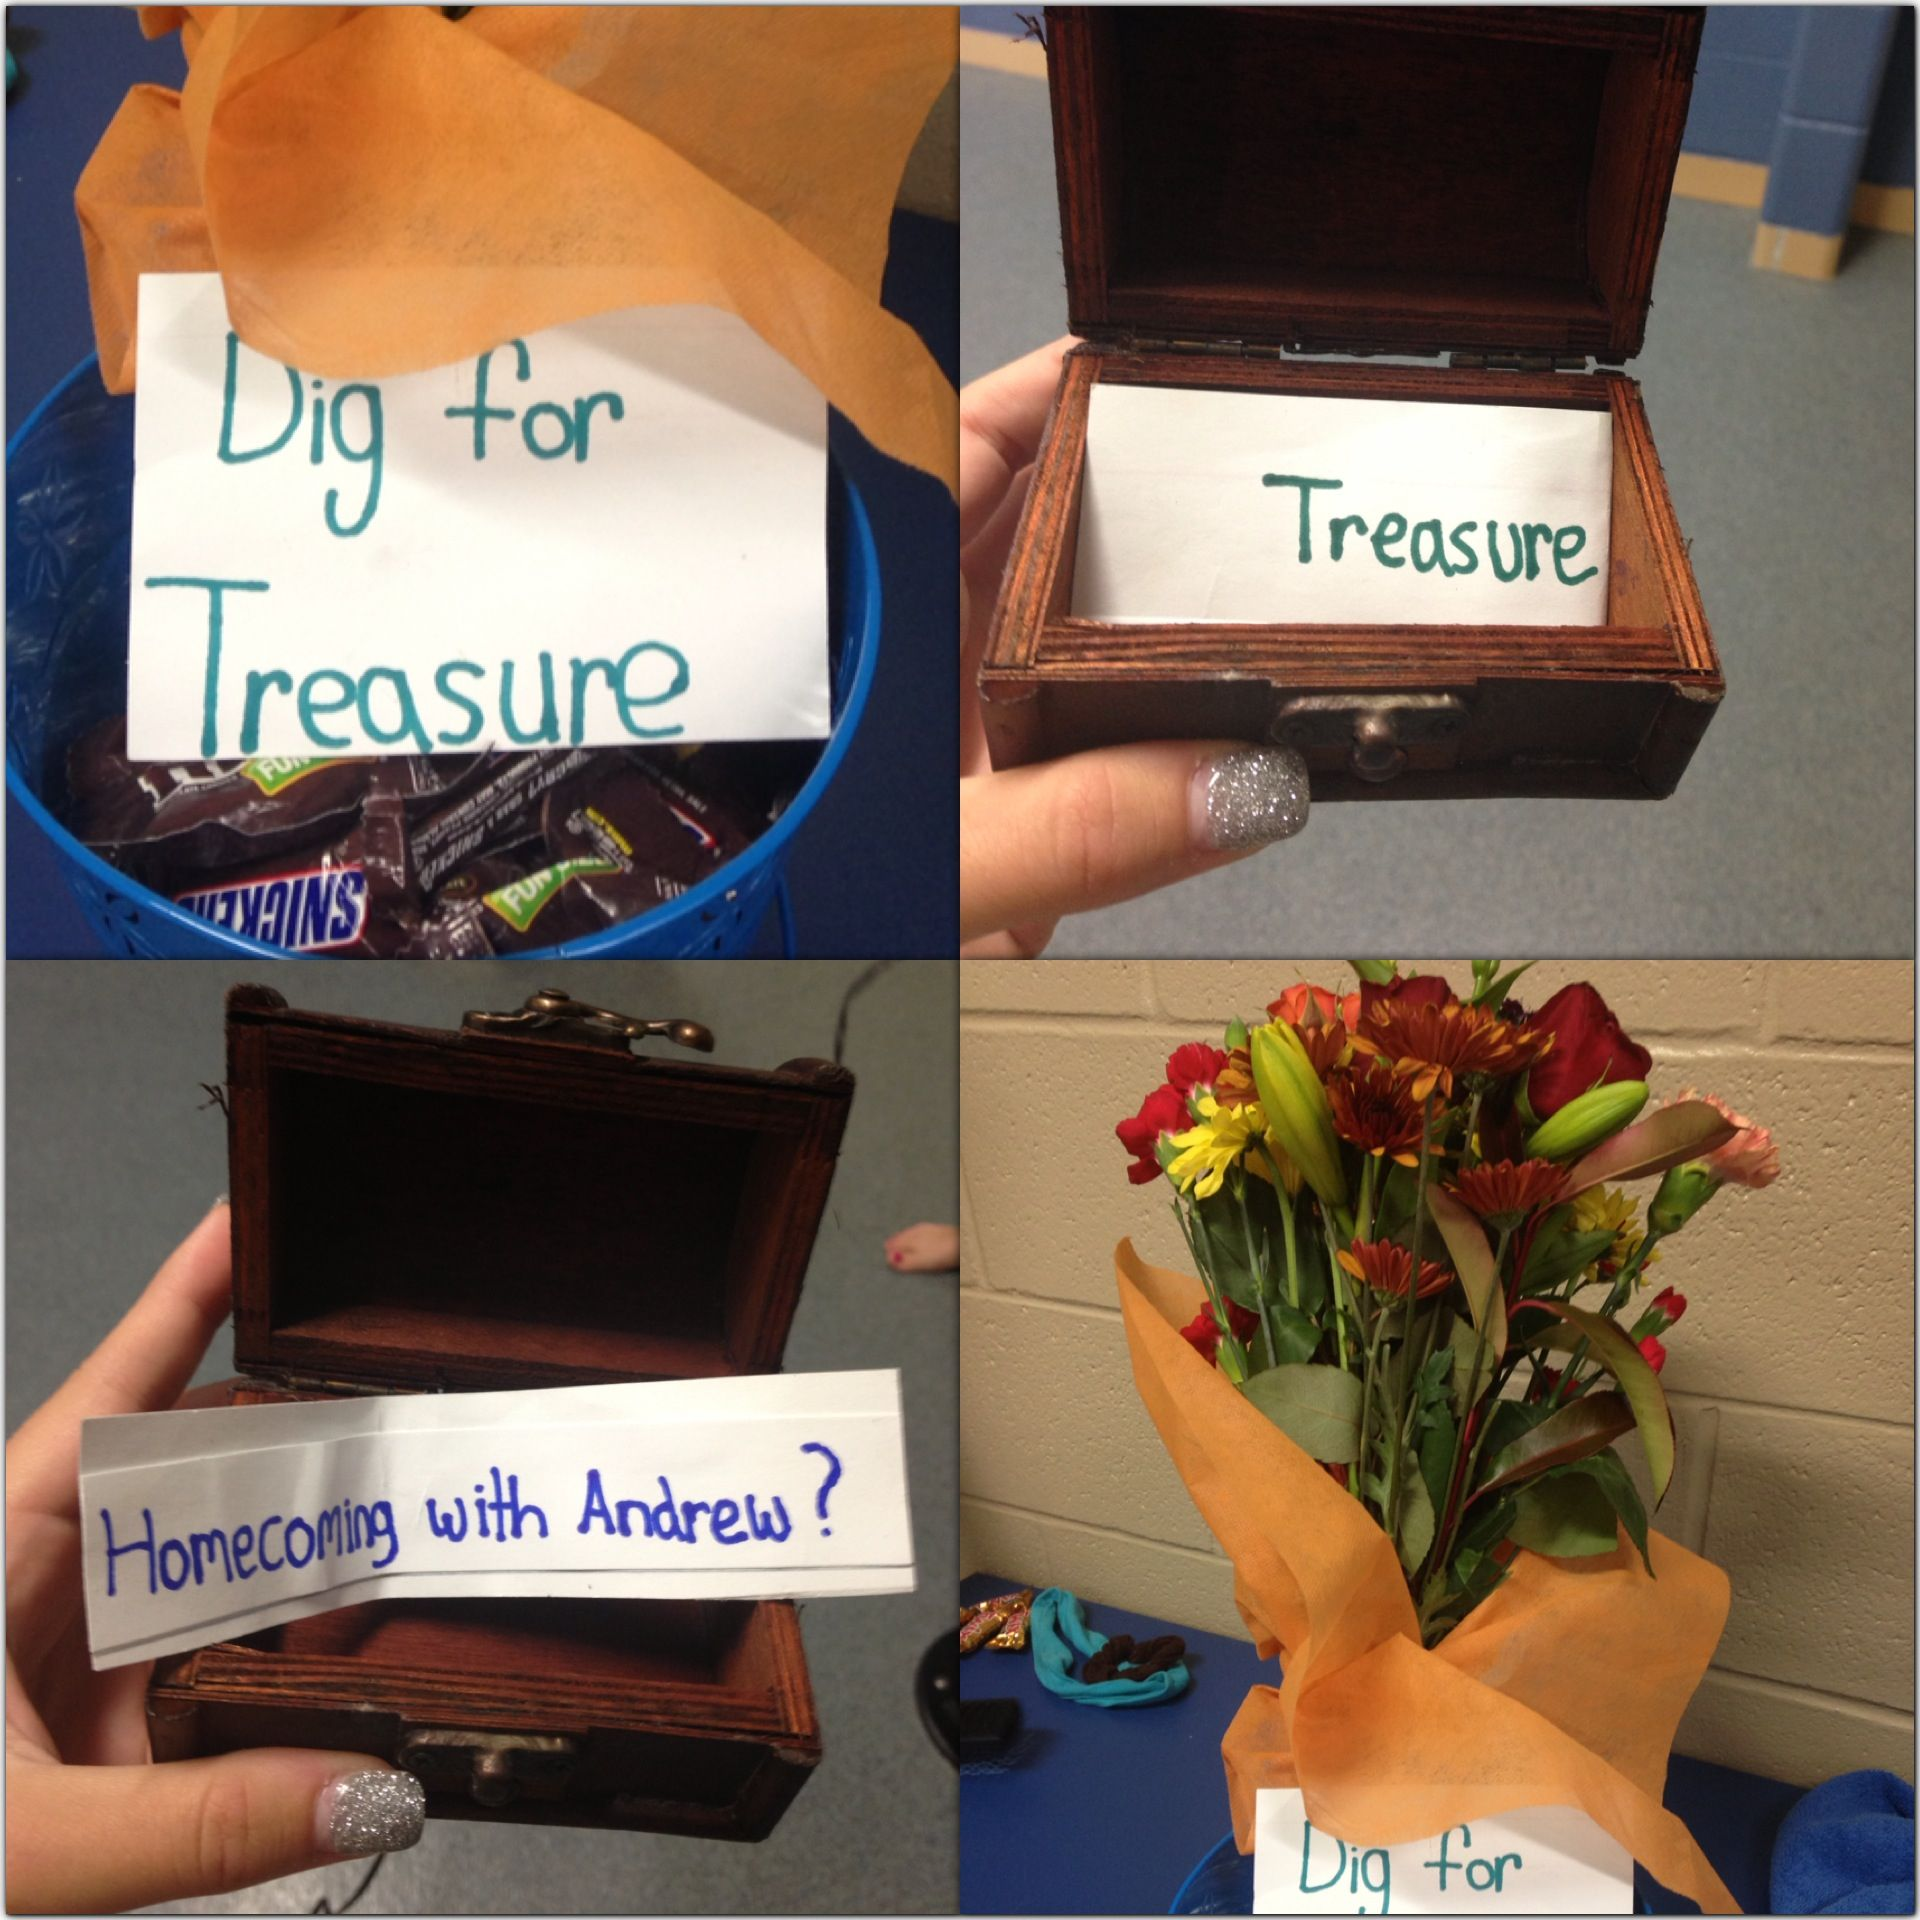 Pin By Flutegina Patootie On Cute Cute Homecoming Ideas Homecoming Proposal Prom Proposal